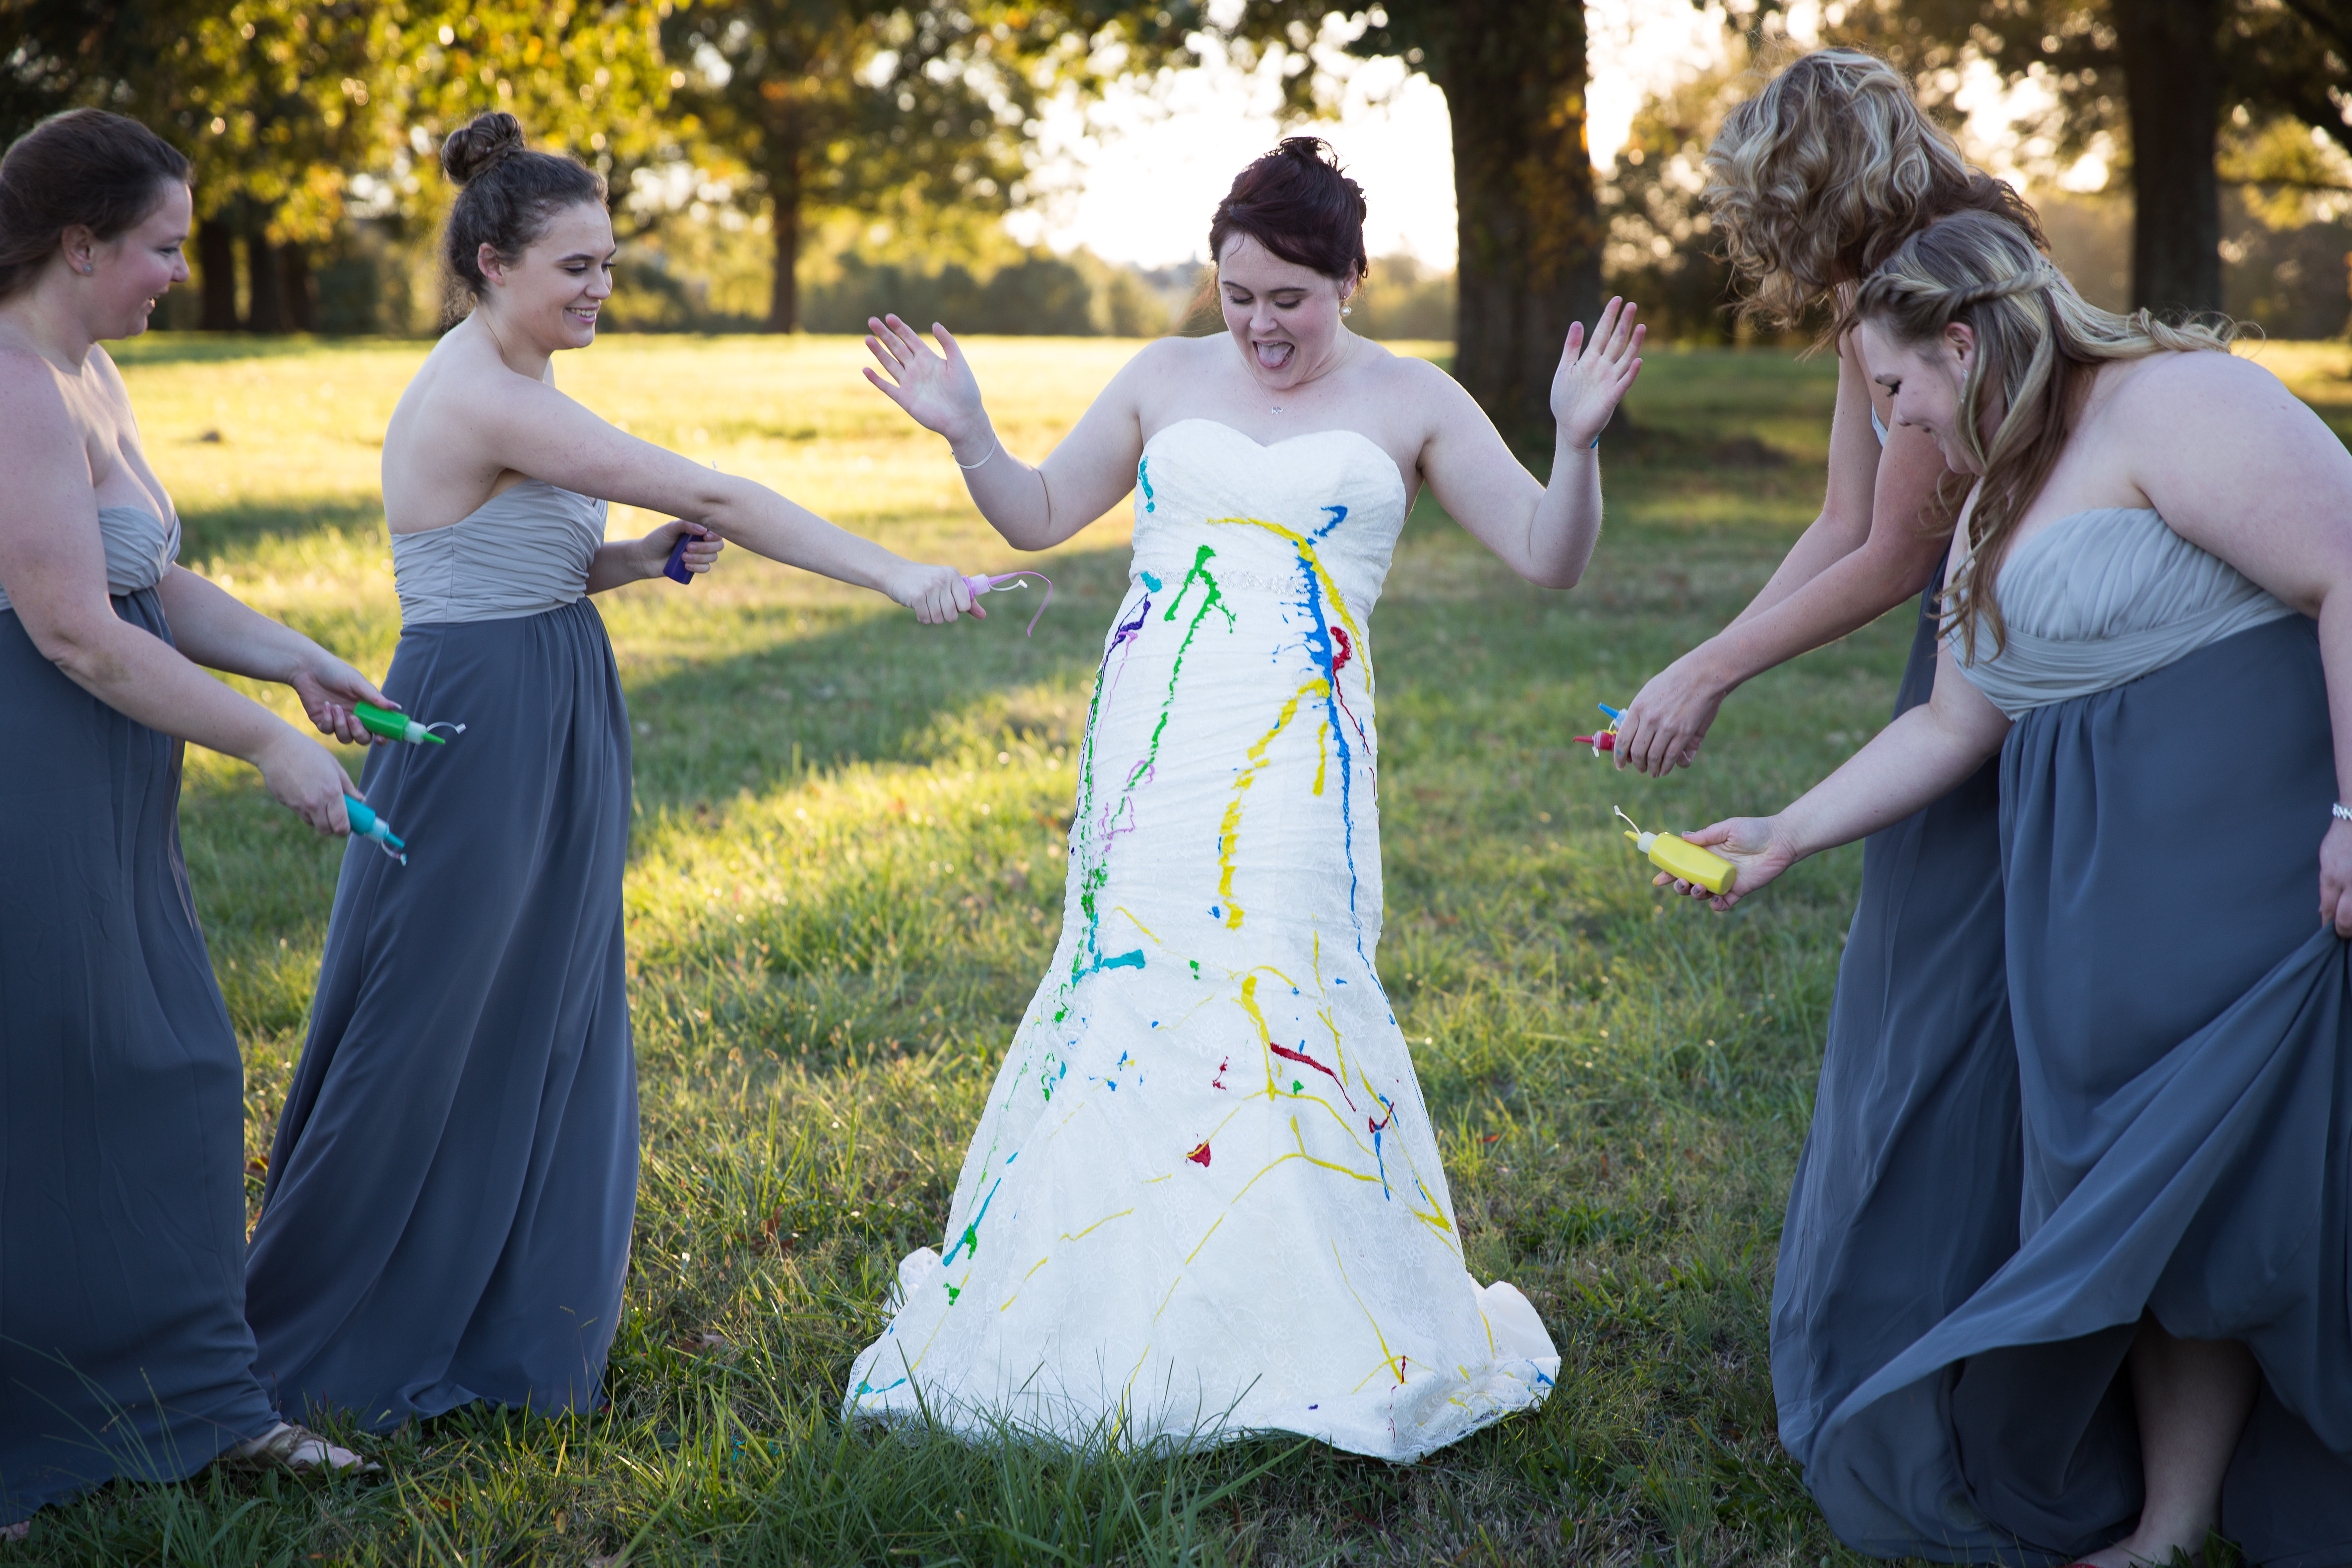 Bride Trashes Gown In Bad Photoshoot After Her Fiance Called Woman Turns Wedding Into Celebratory Divorce Dress What To Do